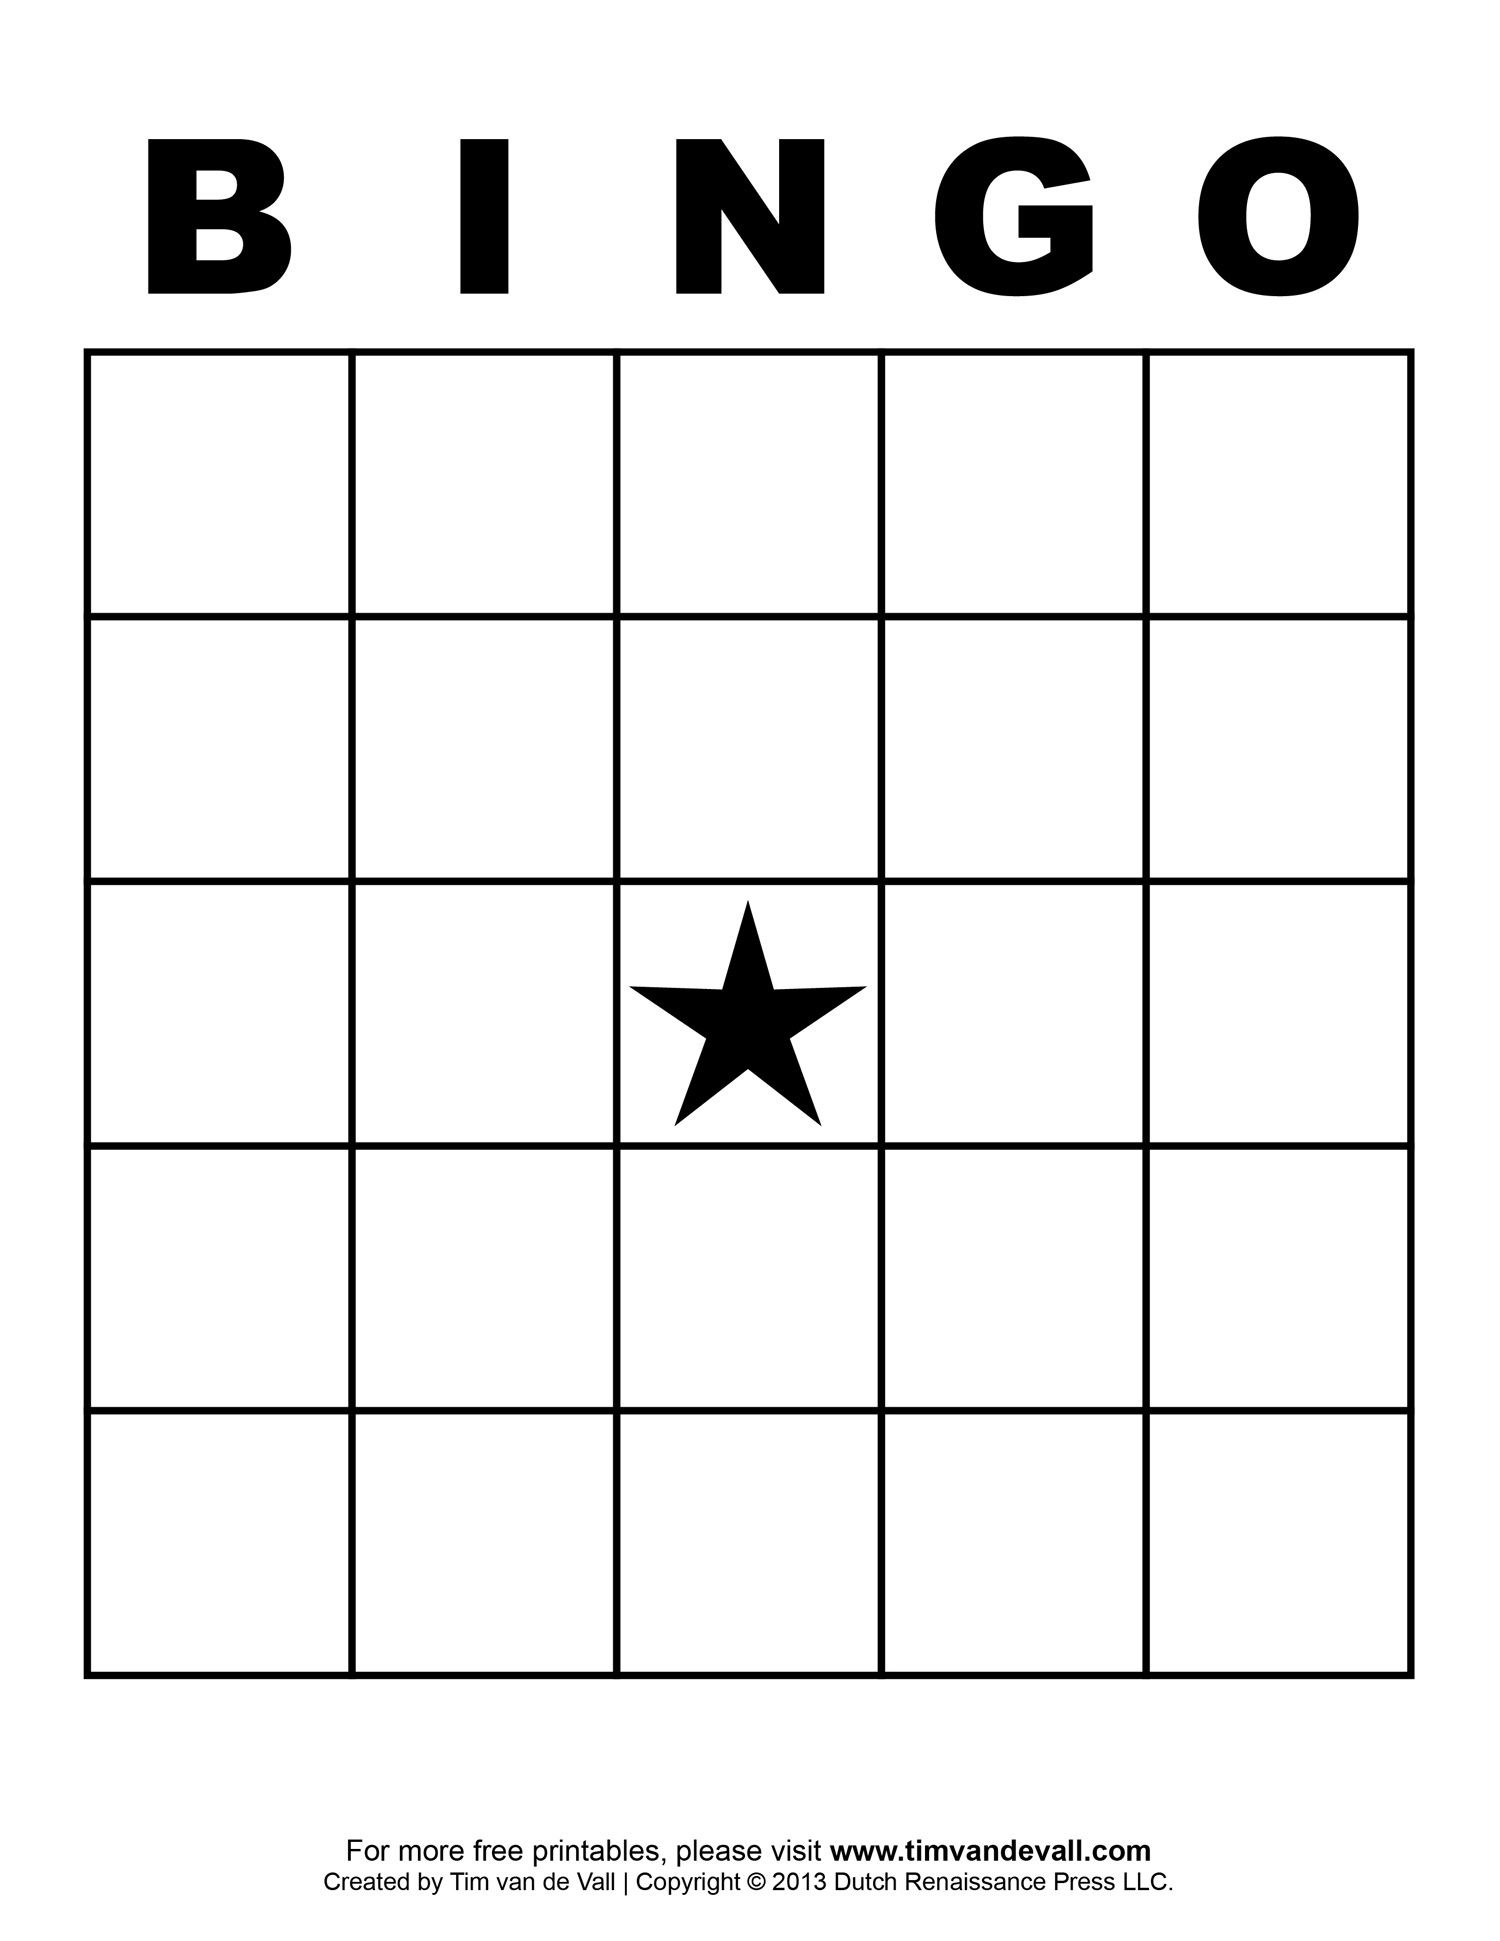 Free Printable Blank Bingo Cards Template 4 X 4 | Classroom | Blank - Free Printable Bingo Cards For Large Groups